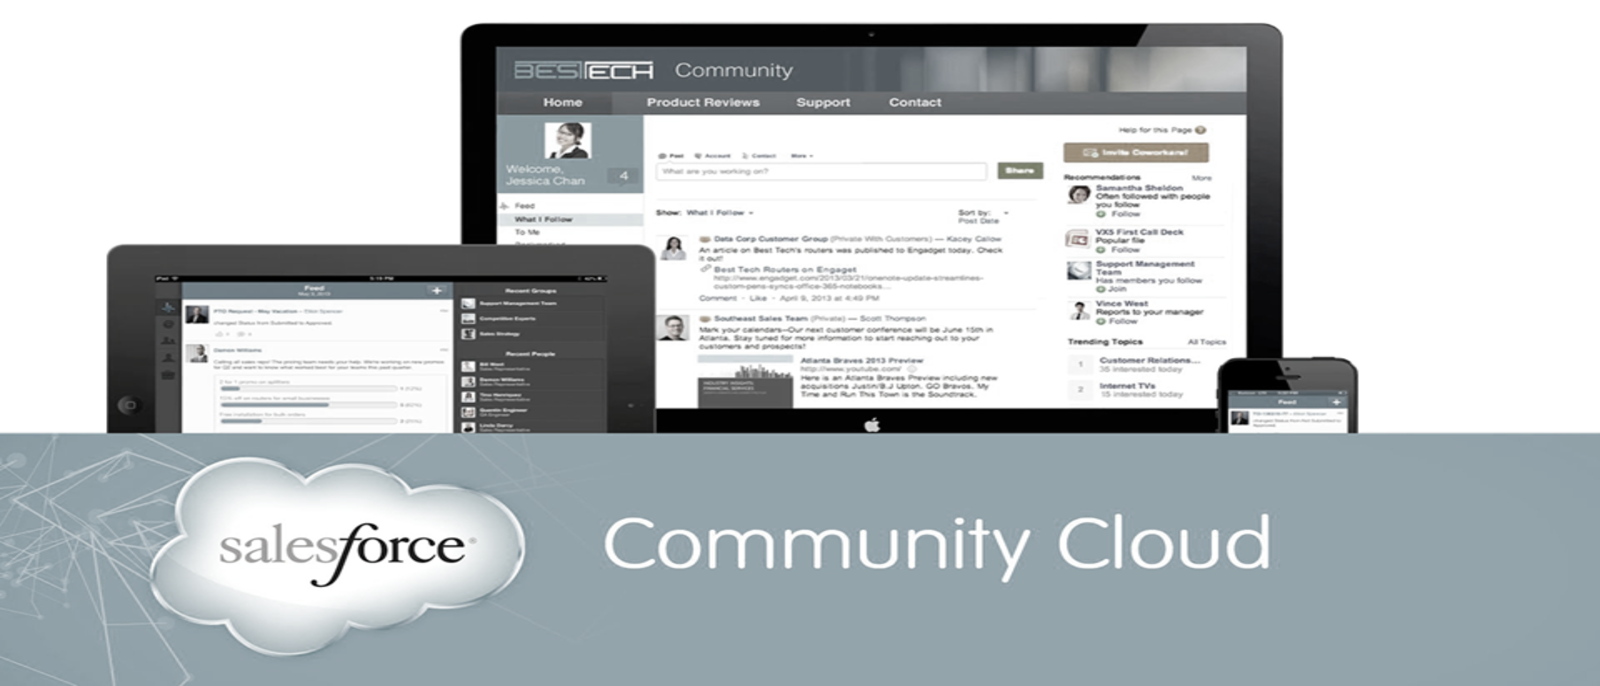 Empower Business with Salesforce Community Cloud